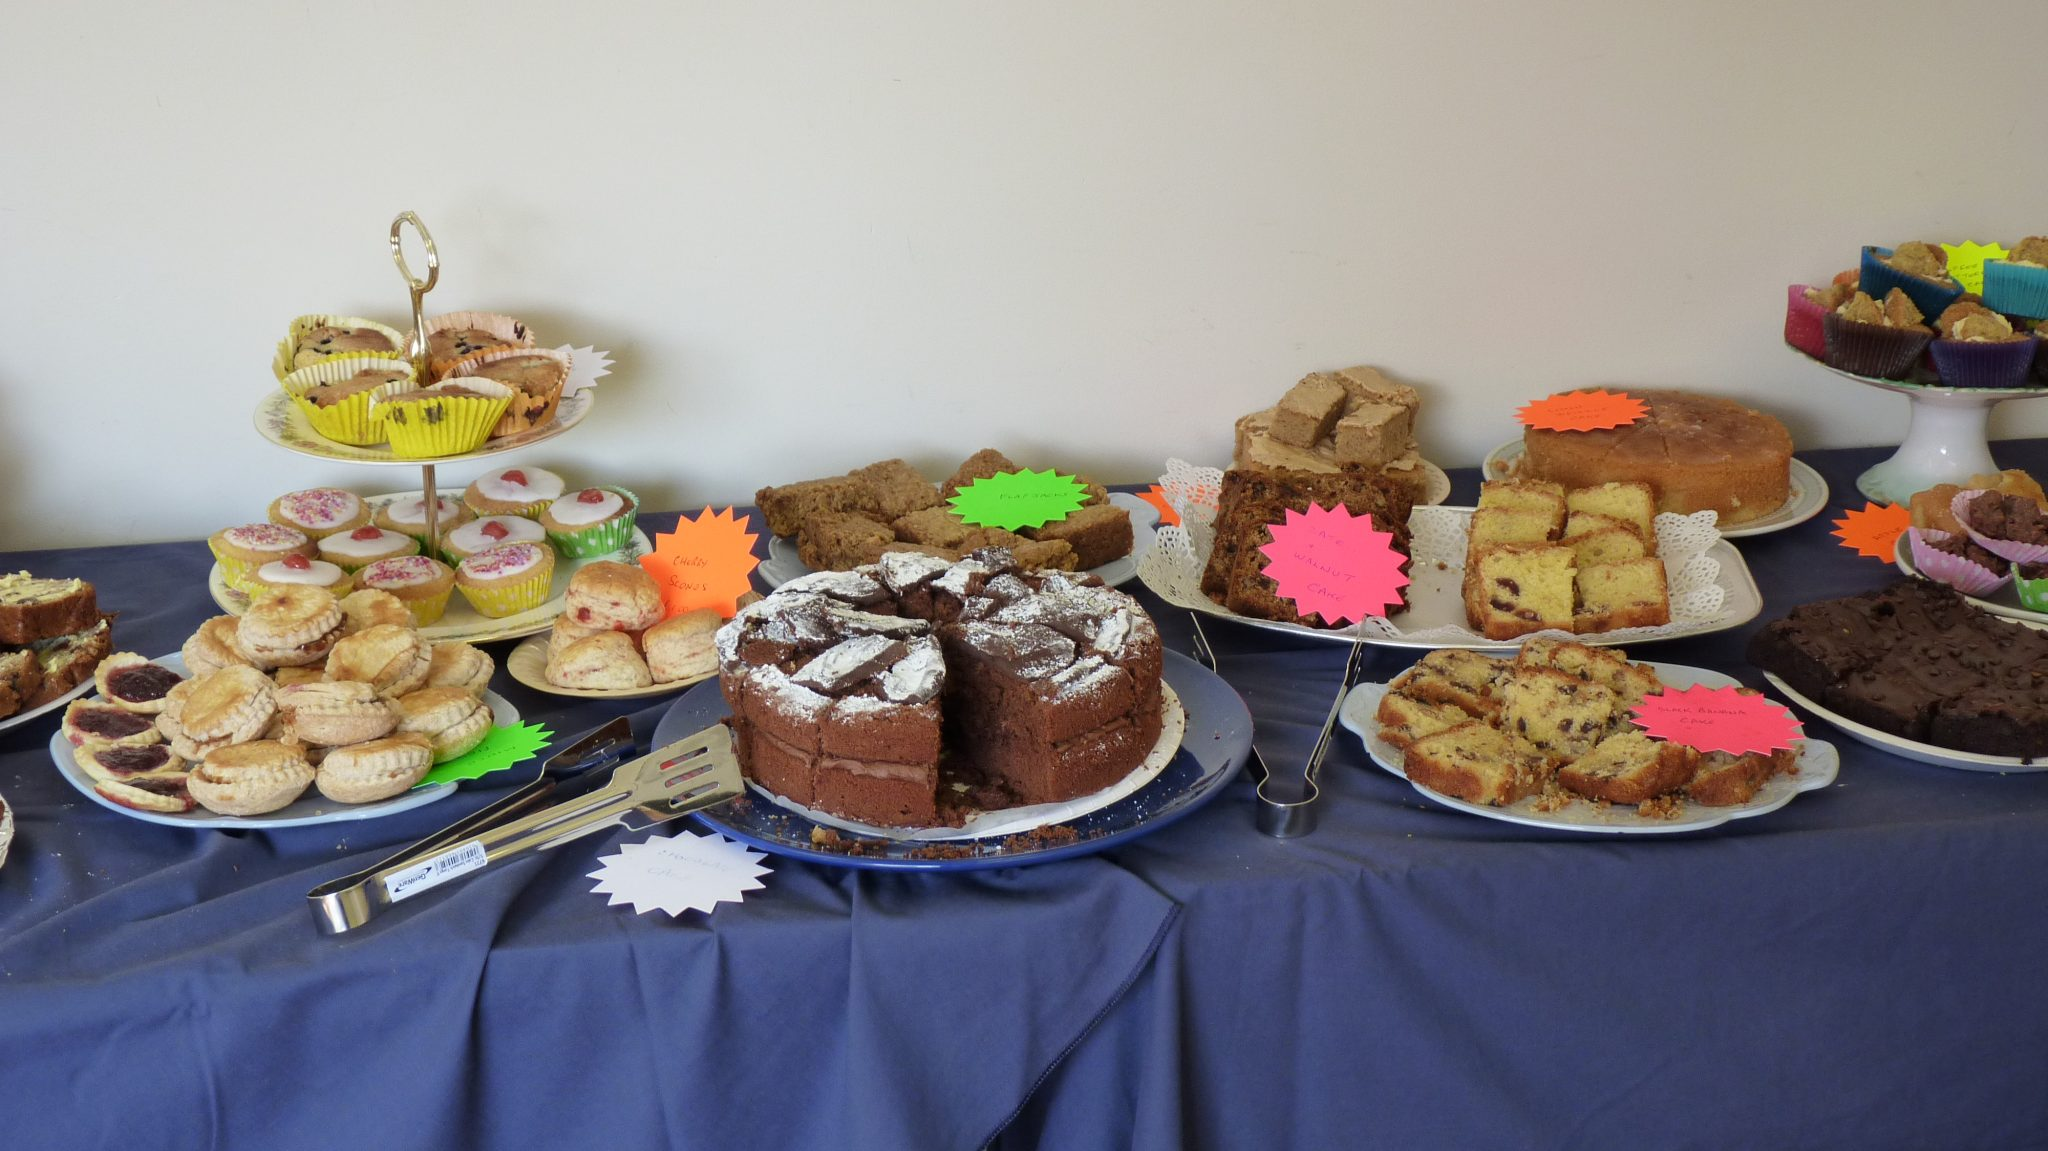 Just some of the homemade cakes donated by volunteers